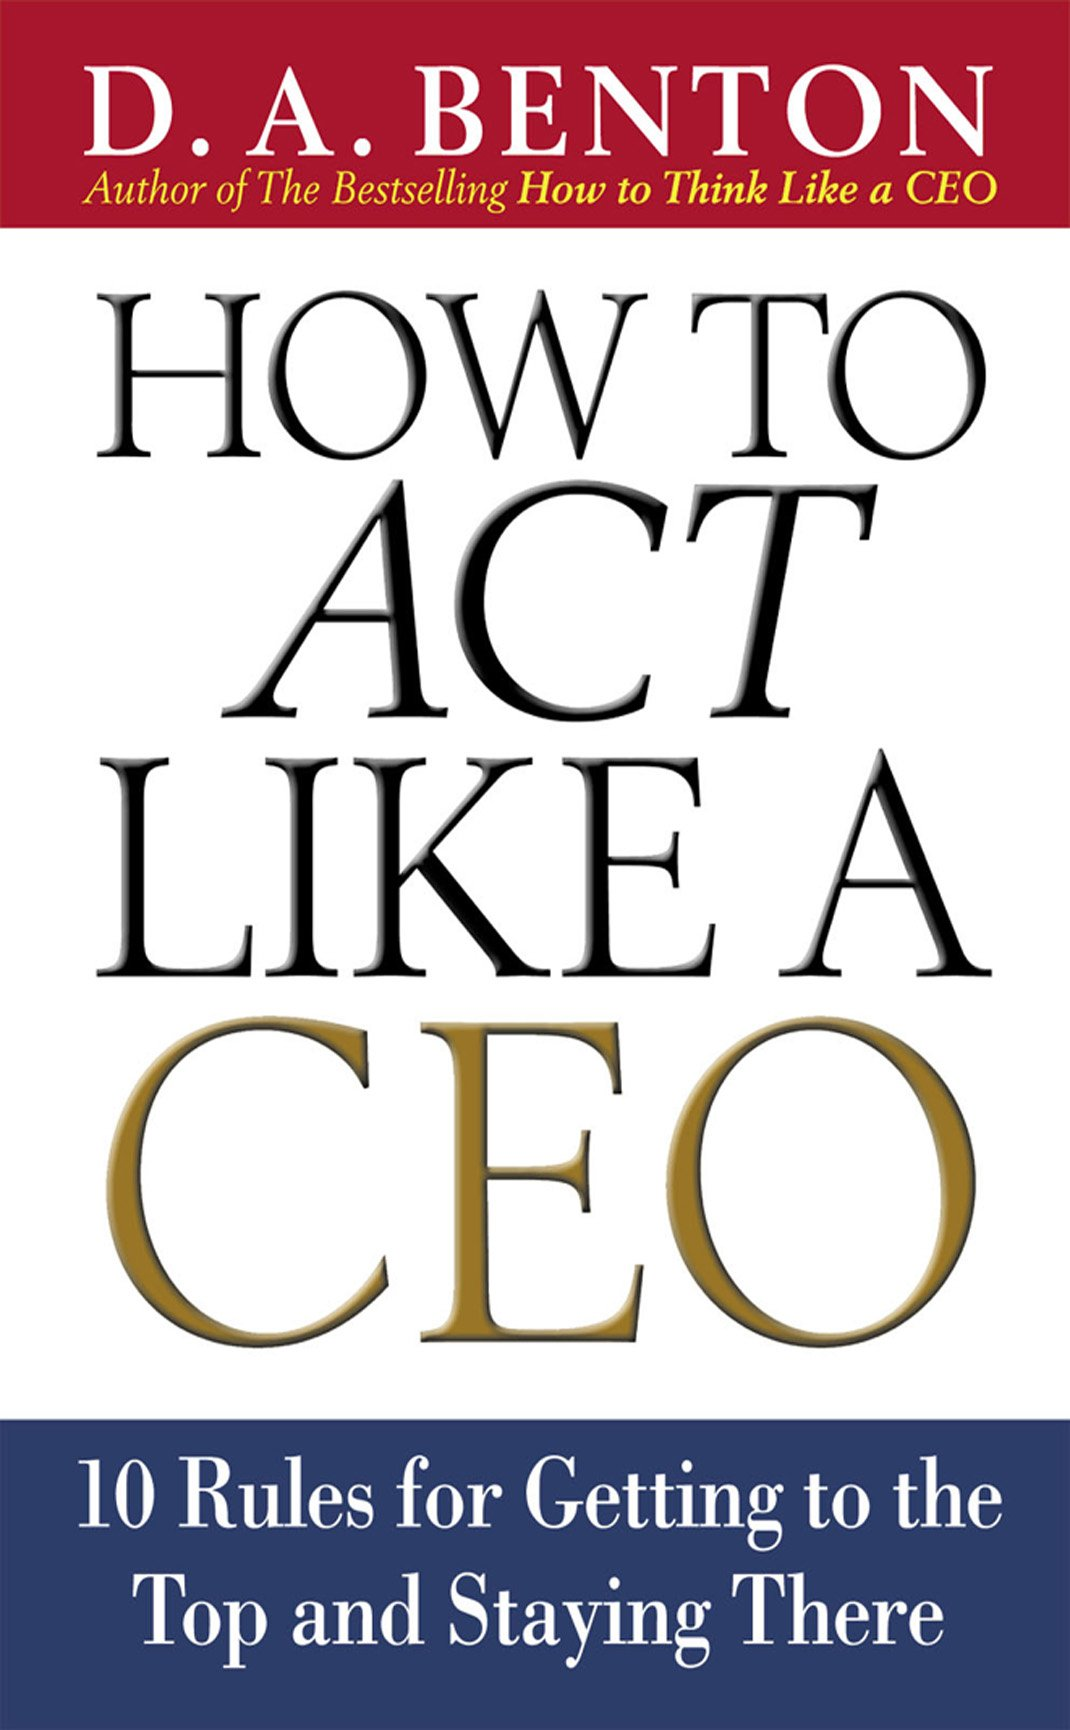 How to Act Like a CEO: 10 Rules for Getting to the Top and Staying There: 11 Rules for Getting to the Top and Staying There